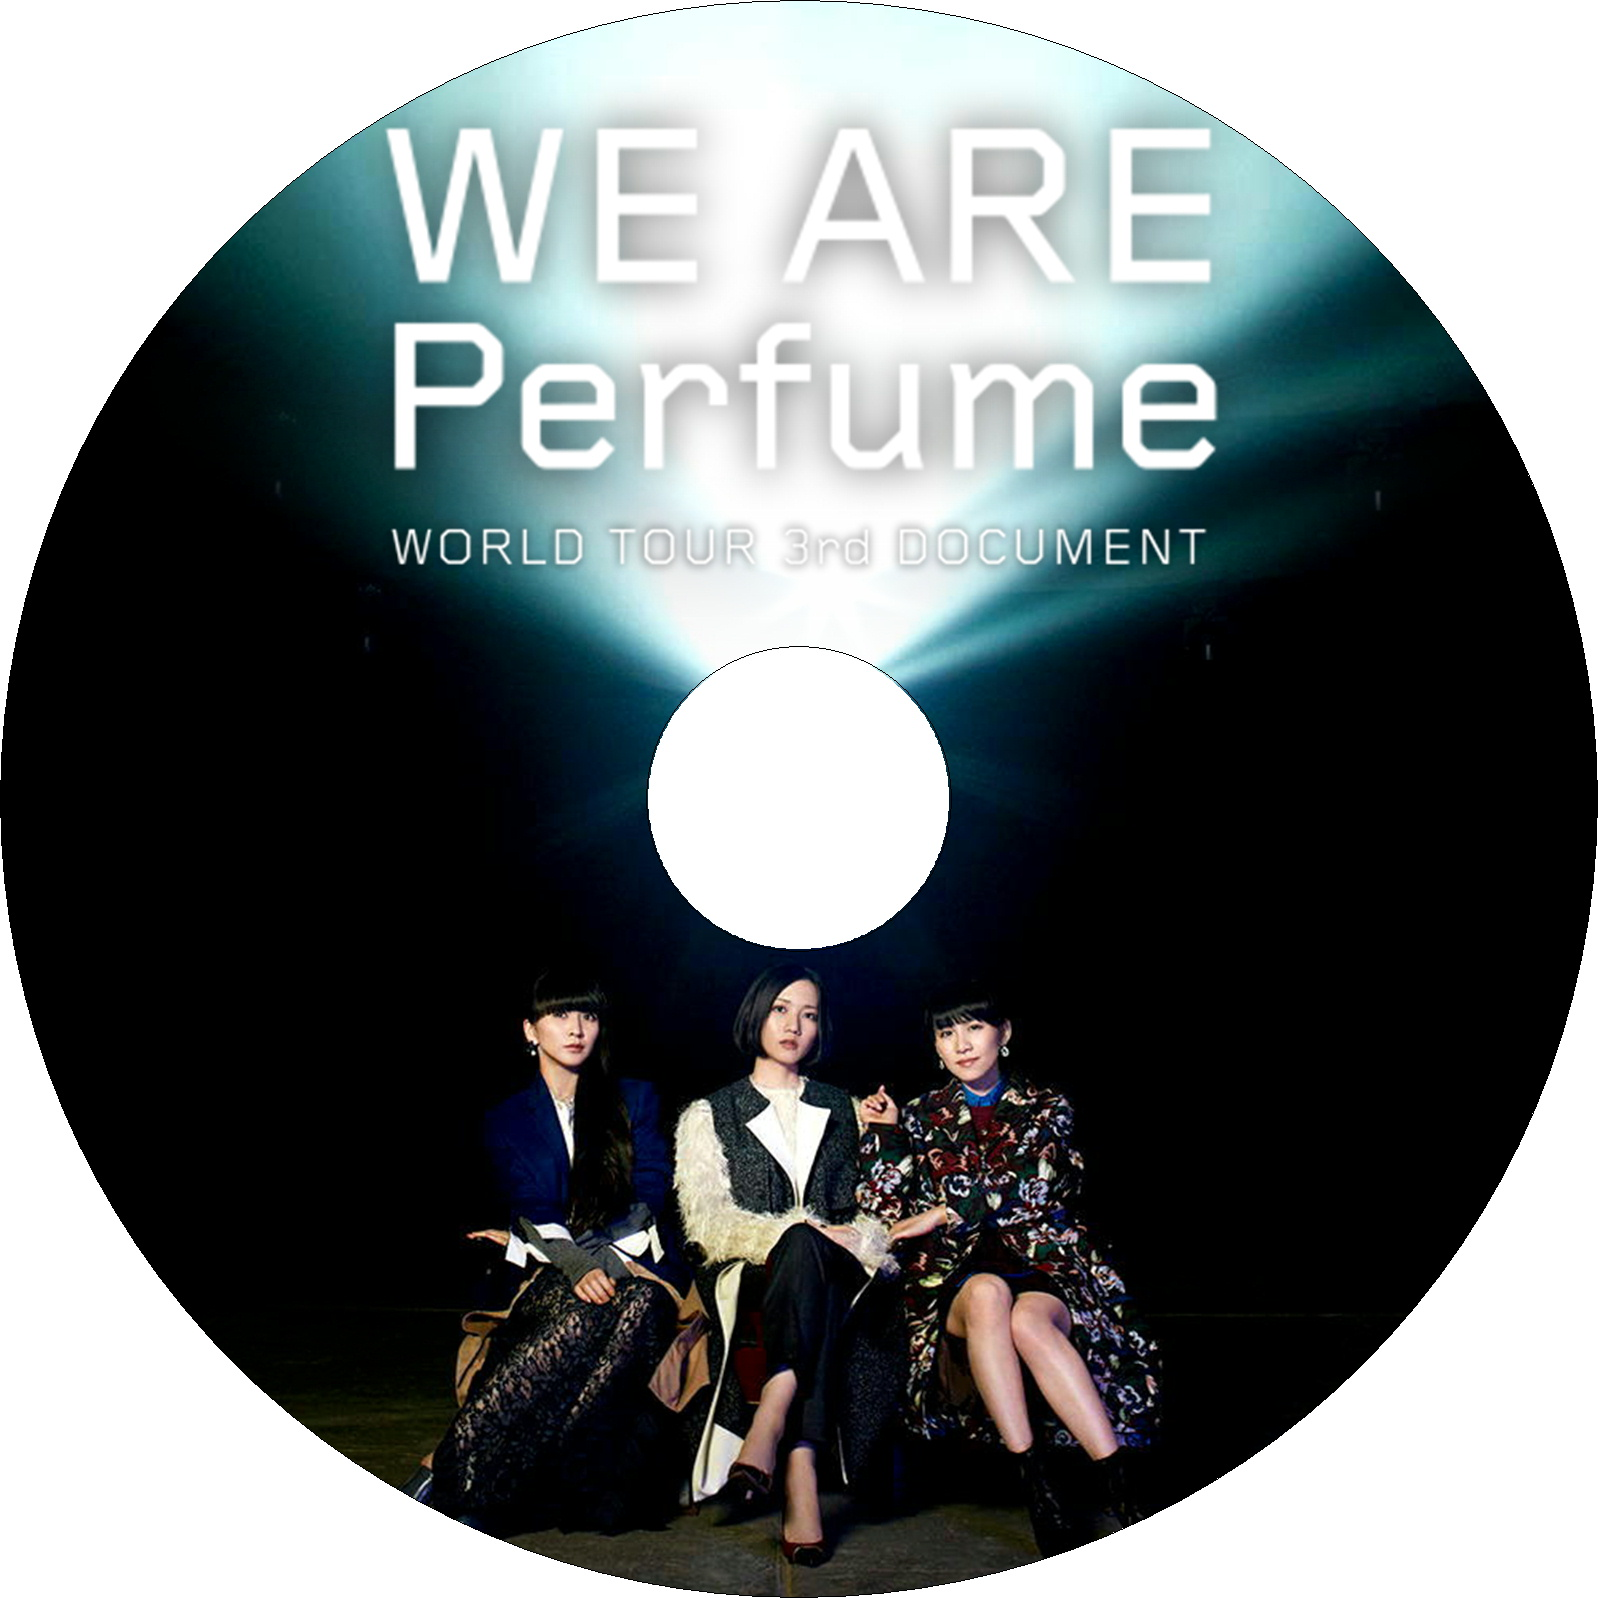 WE ARE Perfume -WORLD TOUR 3rd DOCUMENT ラベル